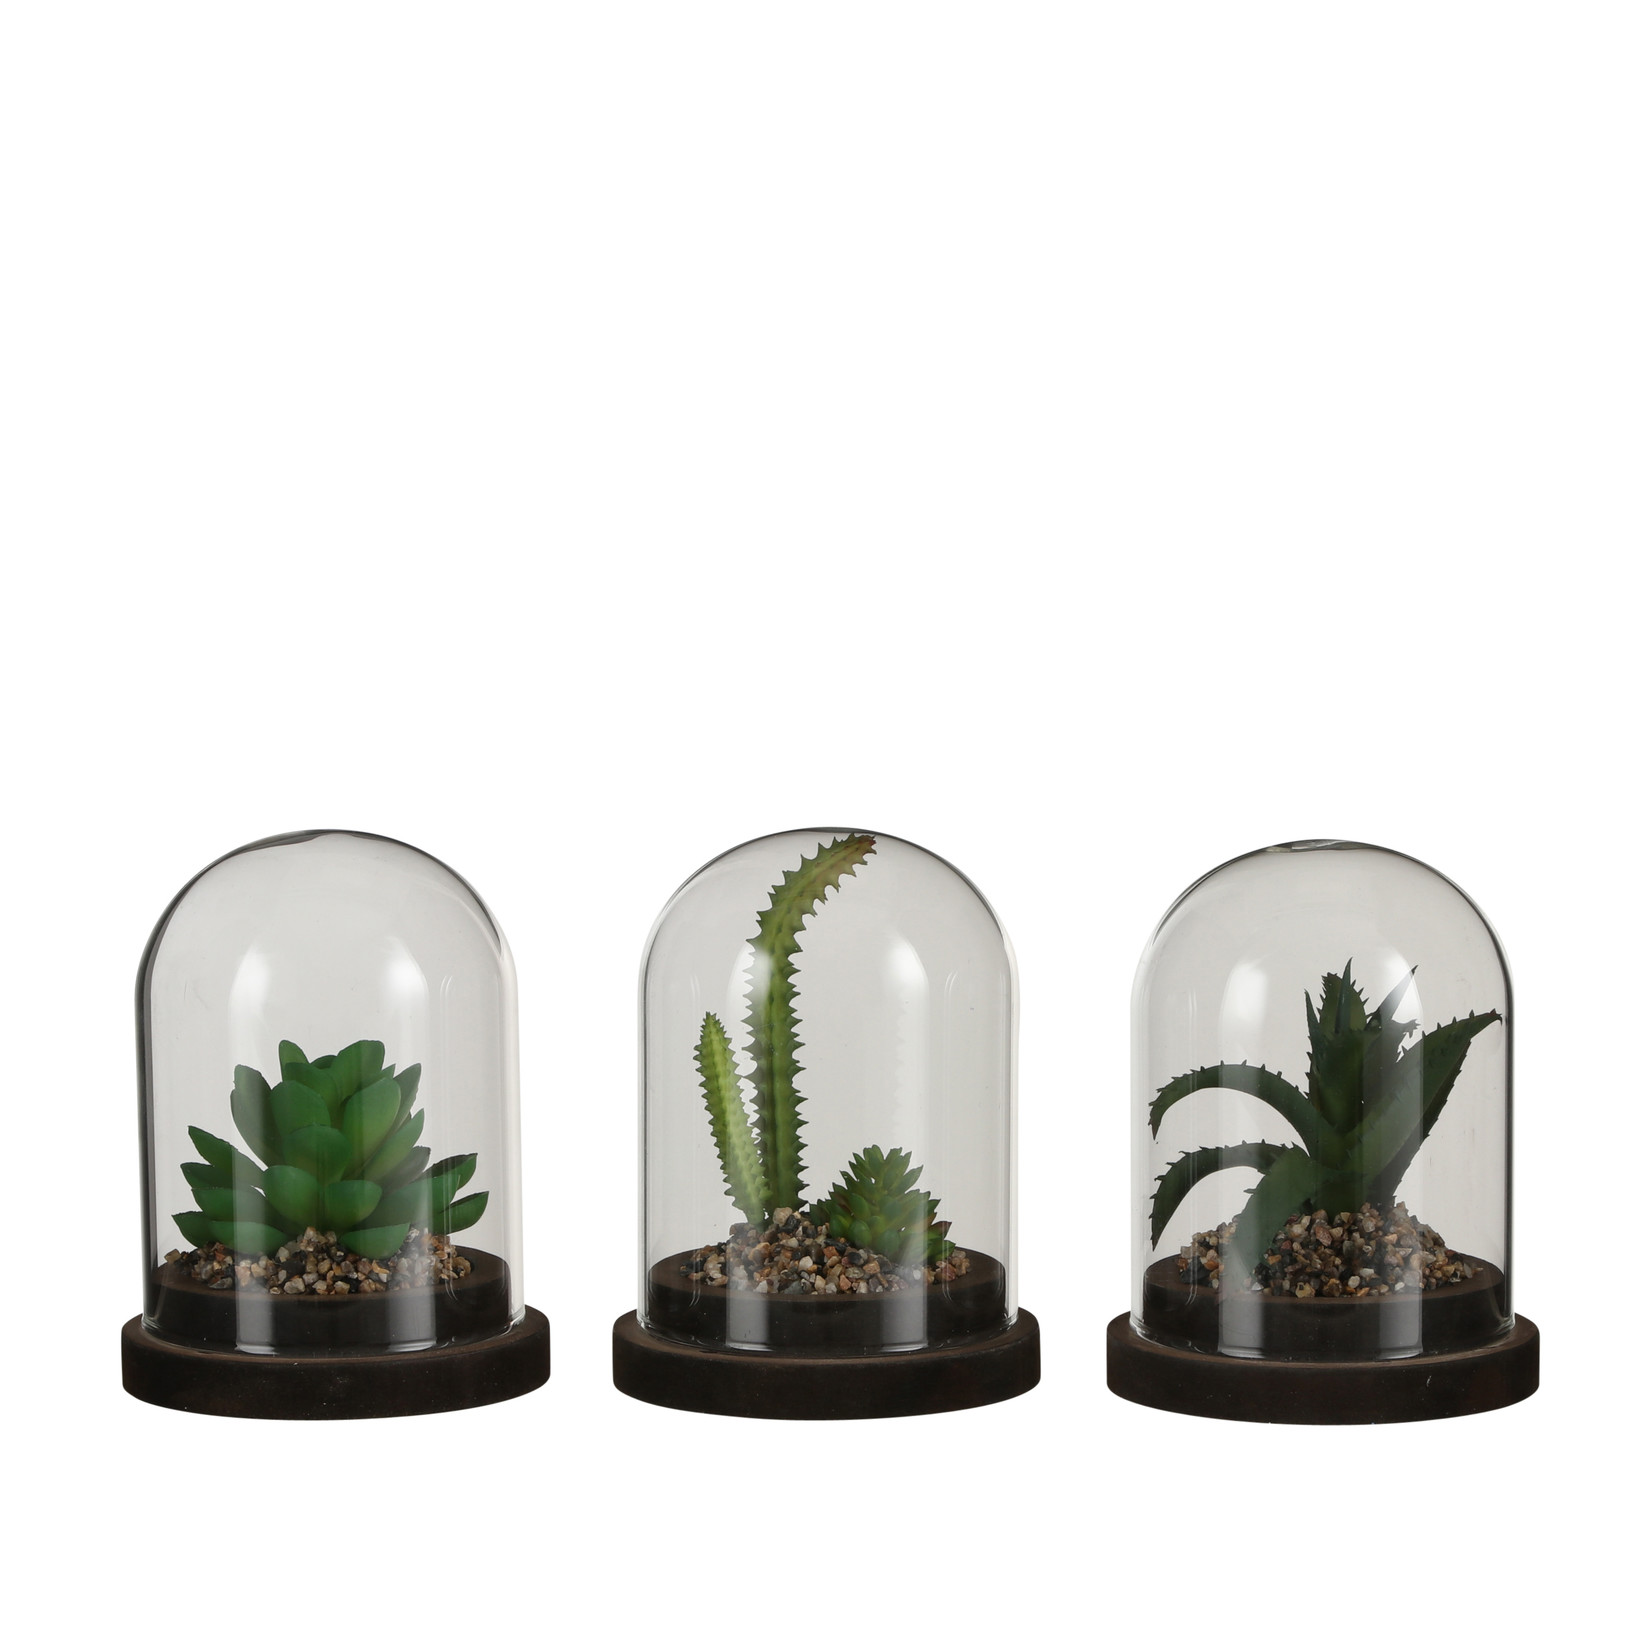 MiCa 1066912 Bell jar with succulent plant